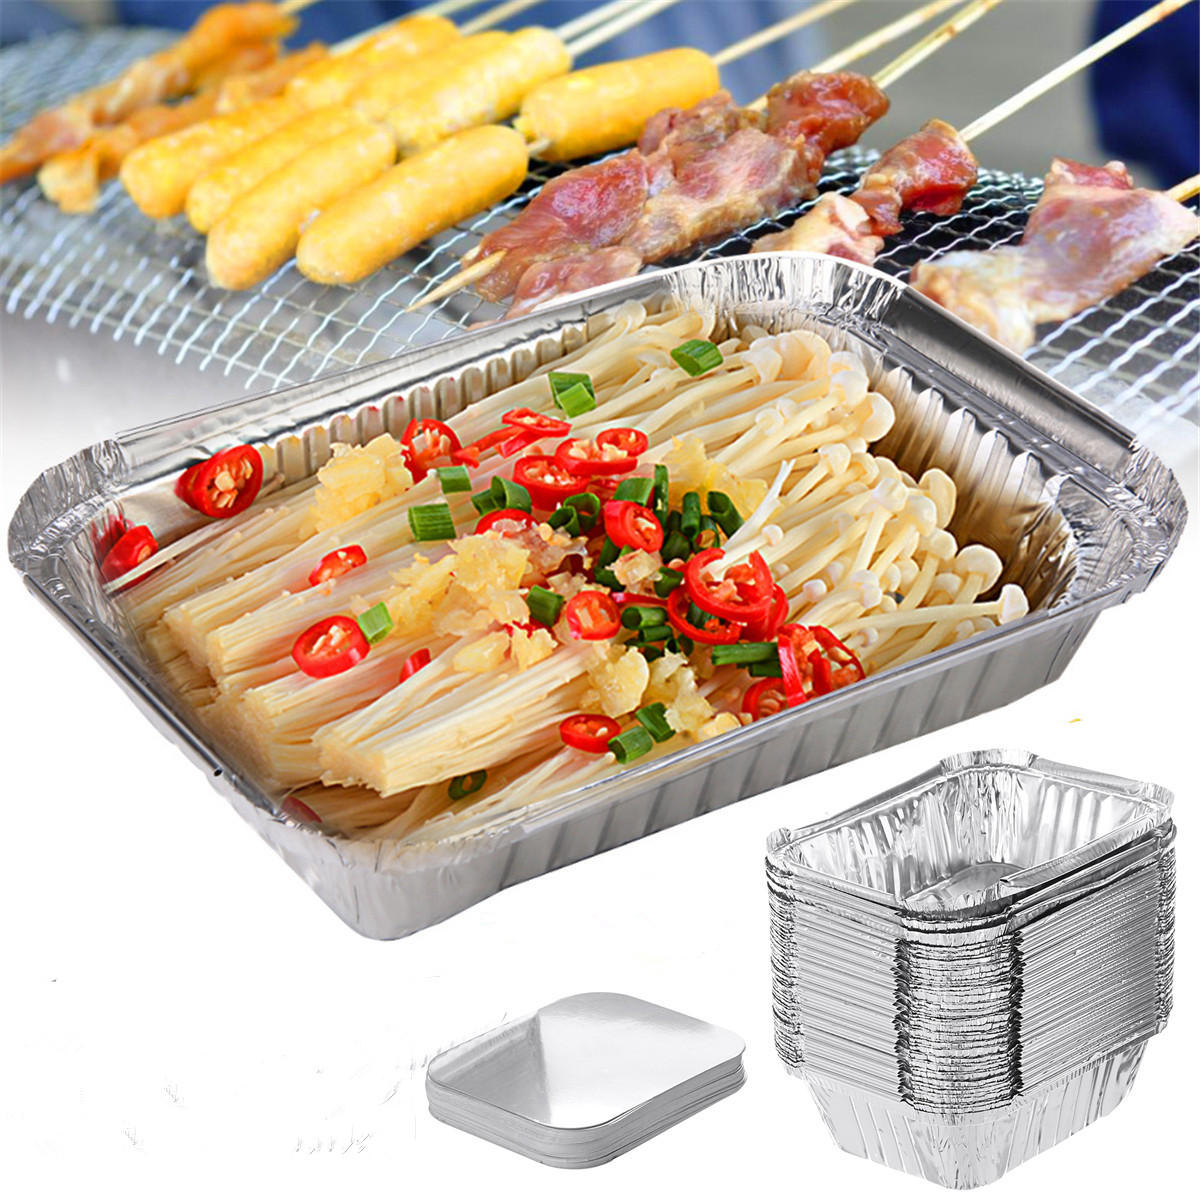 50PCS Aluminum Foil Trays BBQ Disposable BBQ Mat Food Container Baking Pan With Lids